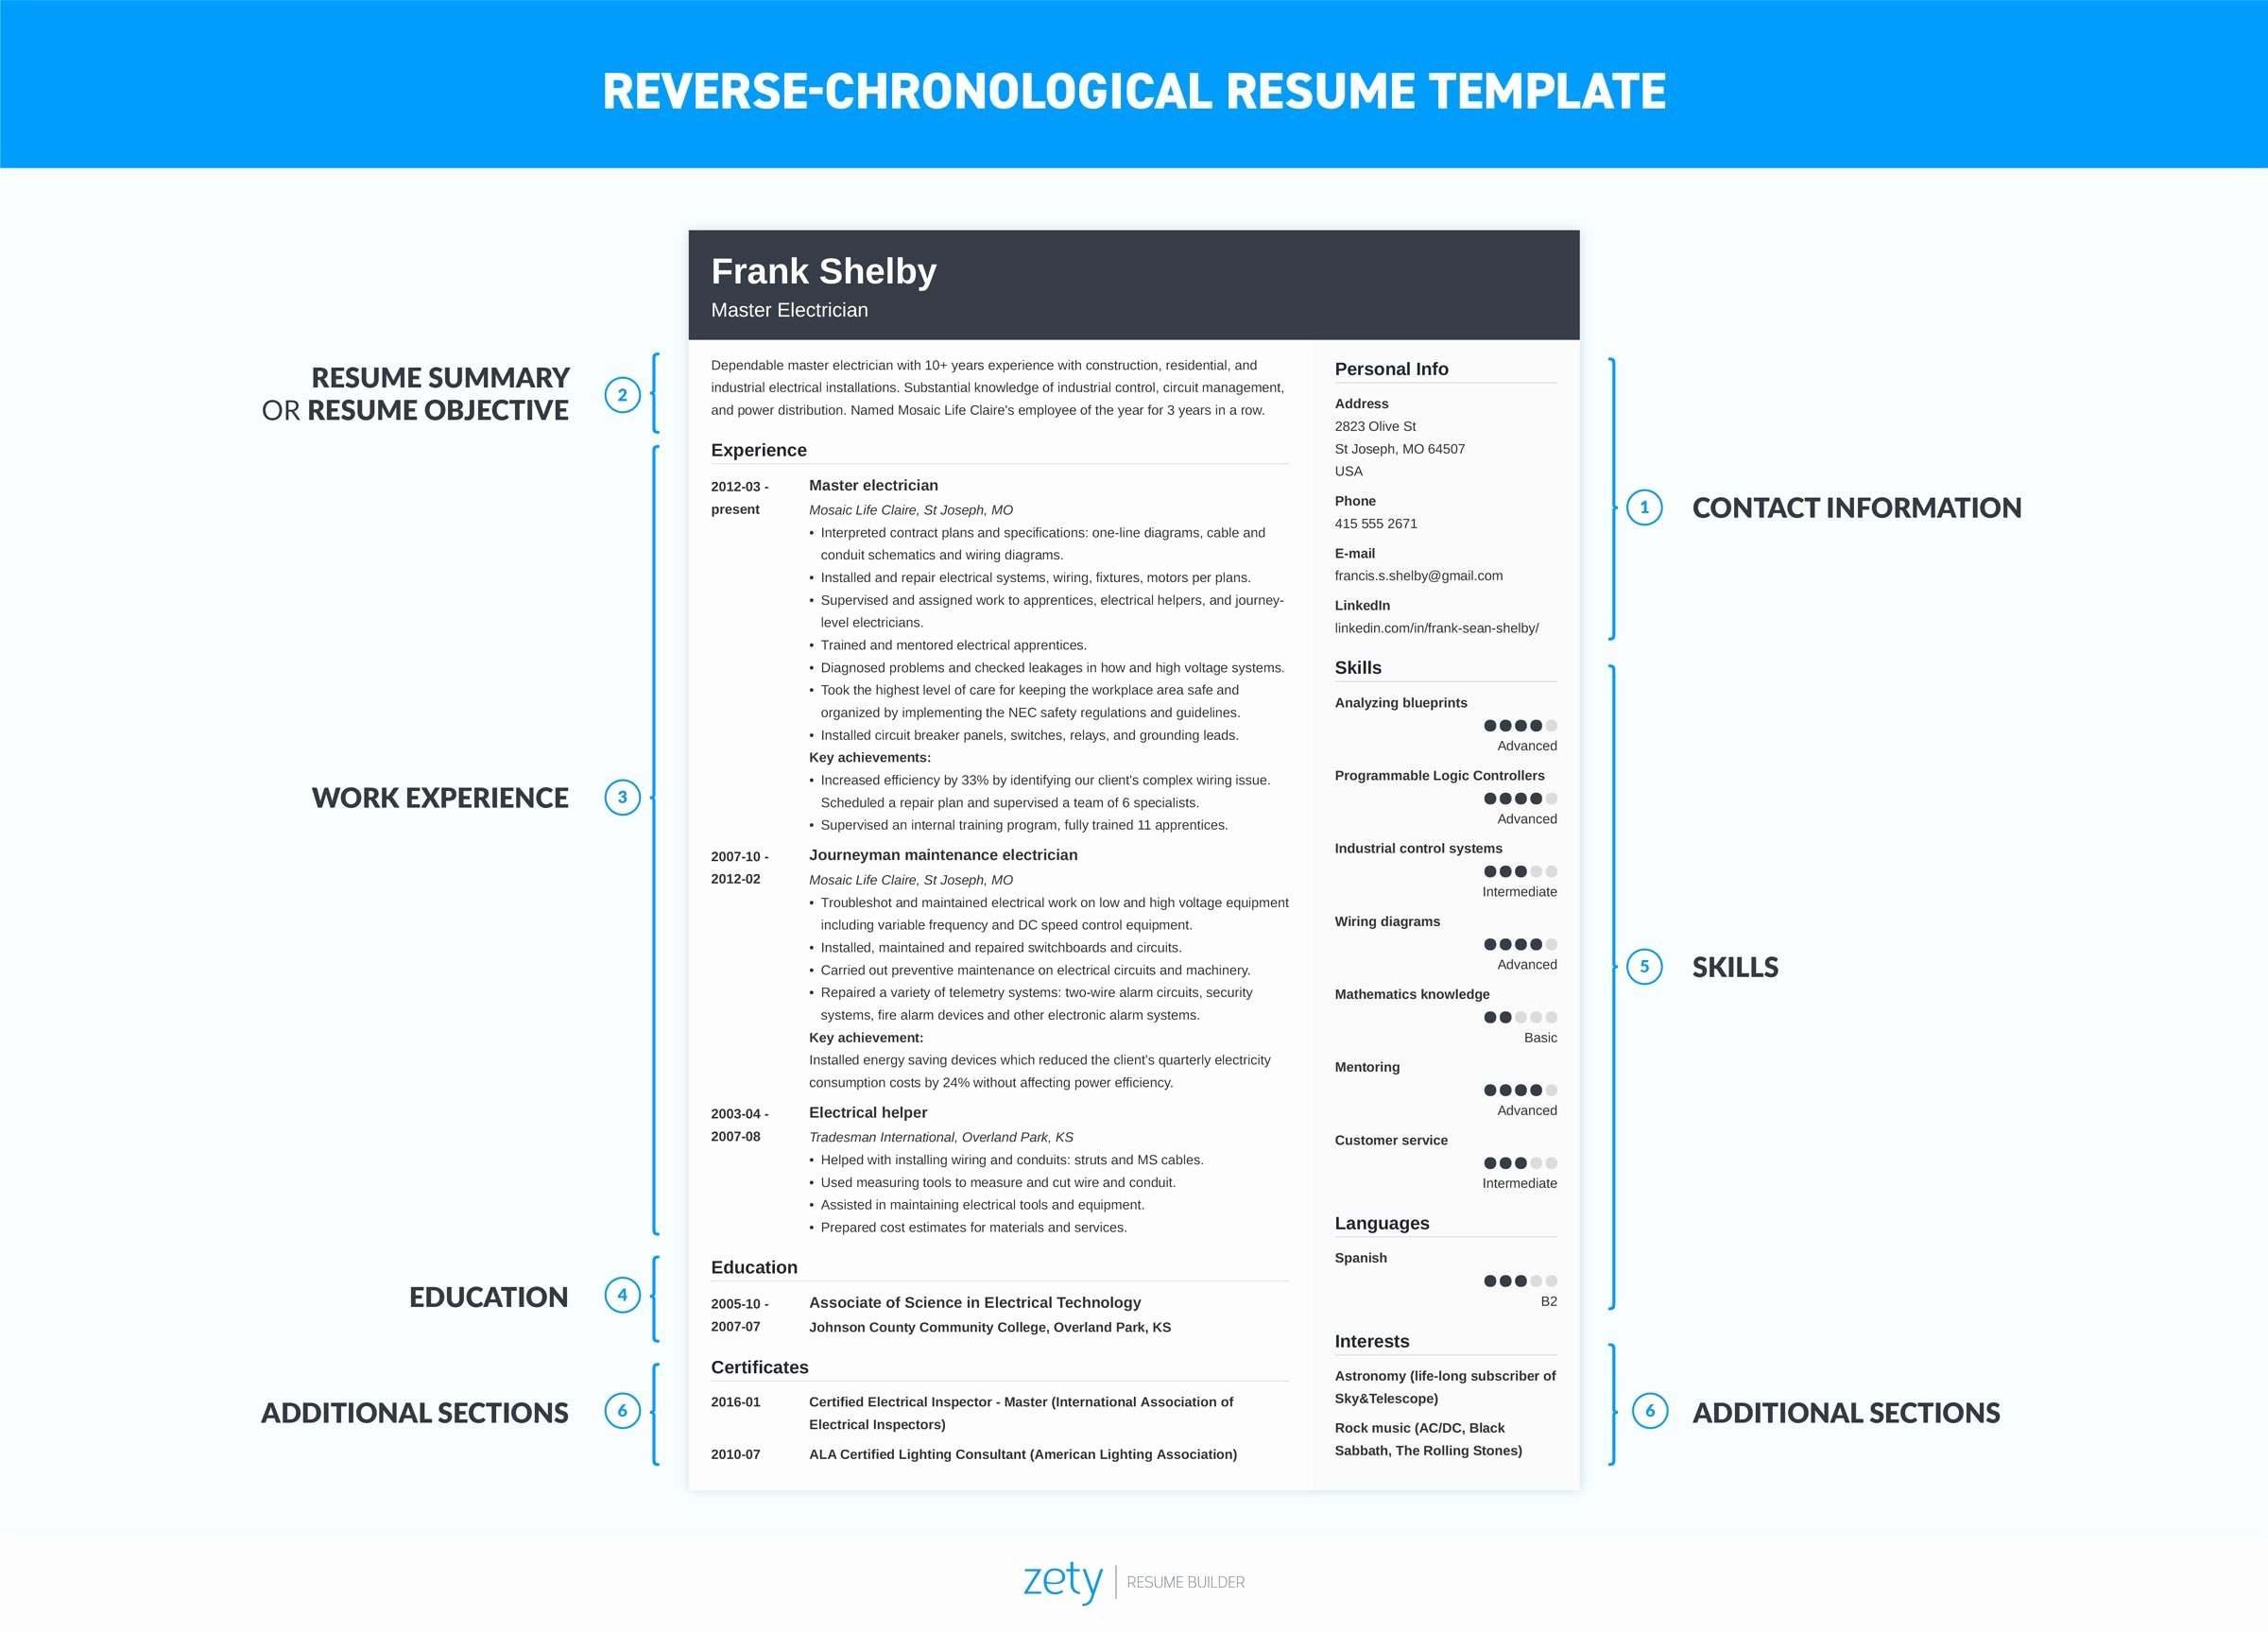 Chronological Resume Template & 20 Examples [ Plete Guide]